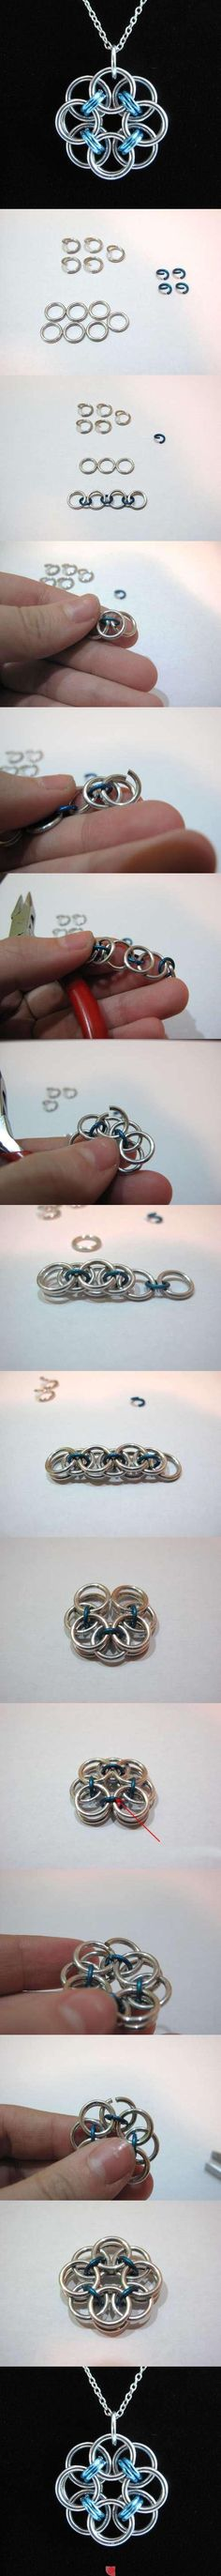 #flower #chainmaille #jewelry #diy